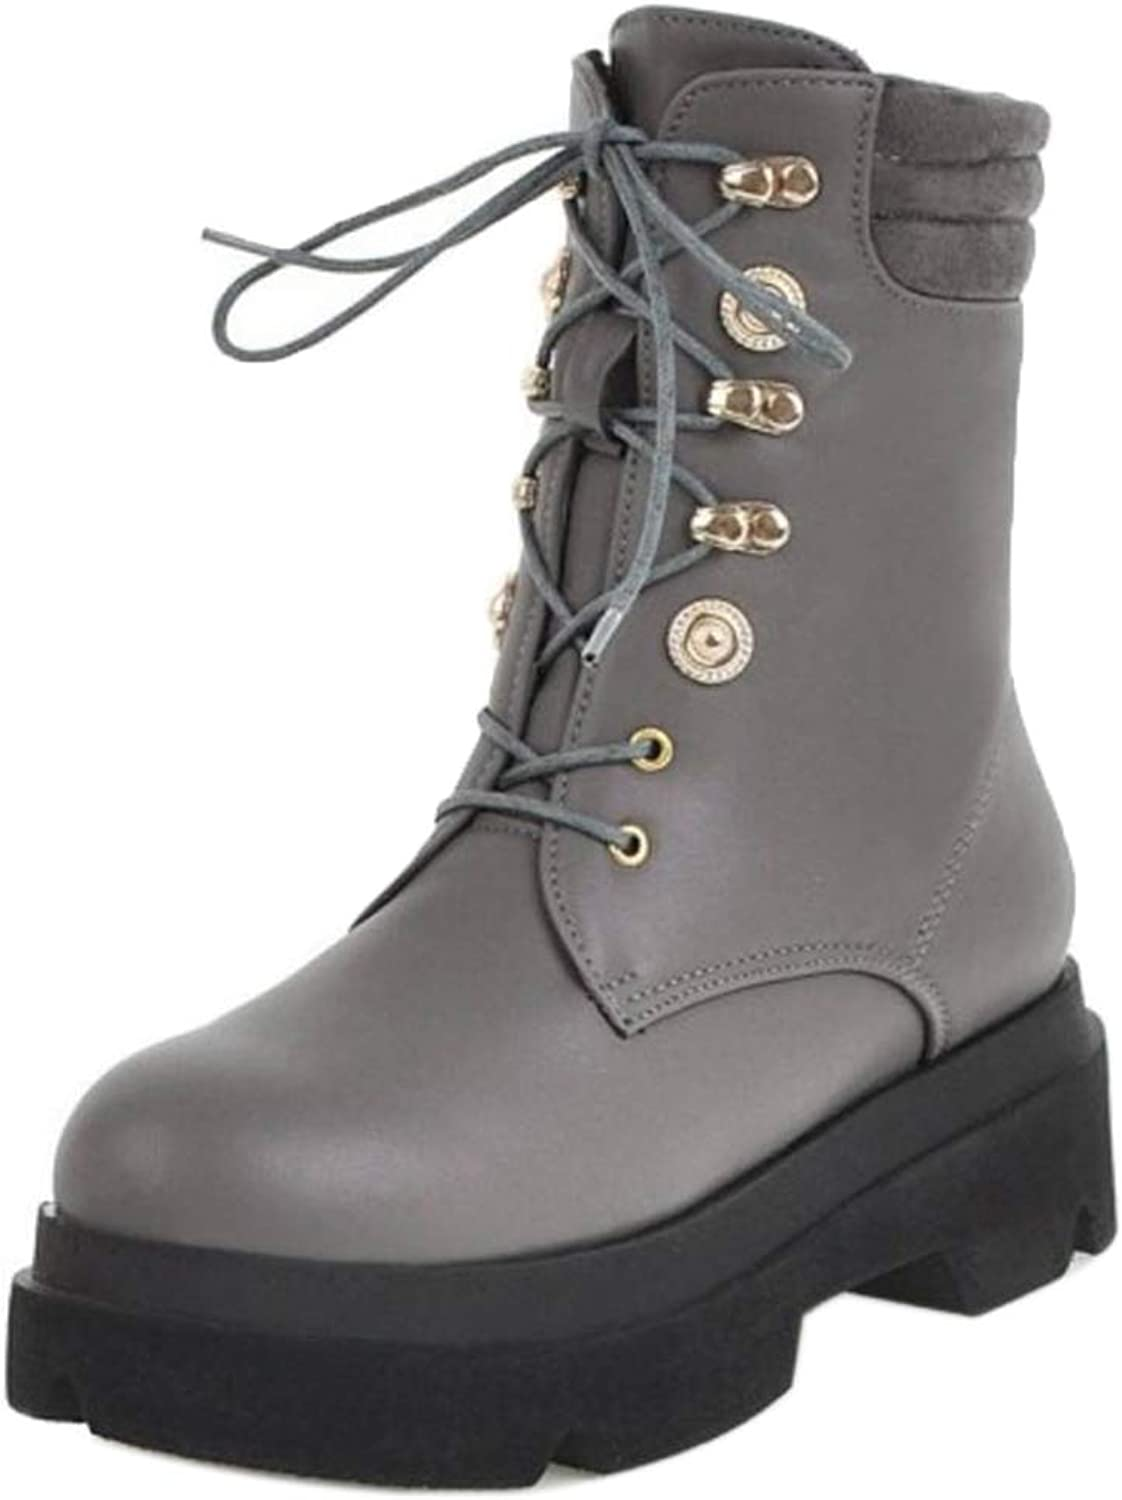 AicciAizzi Women Lace Up Biker Boots Thick Sole